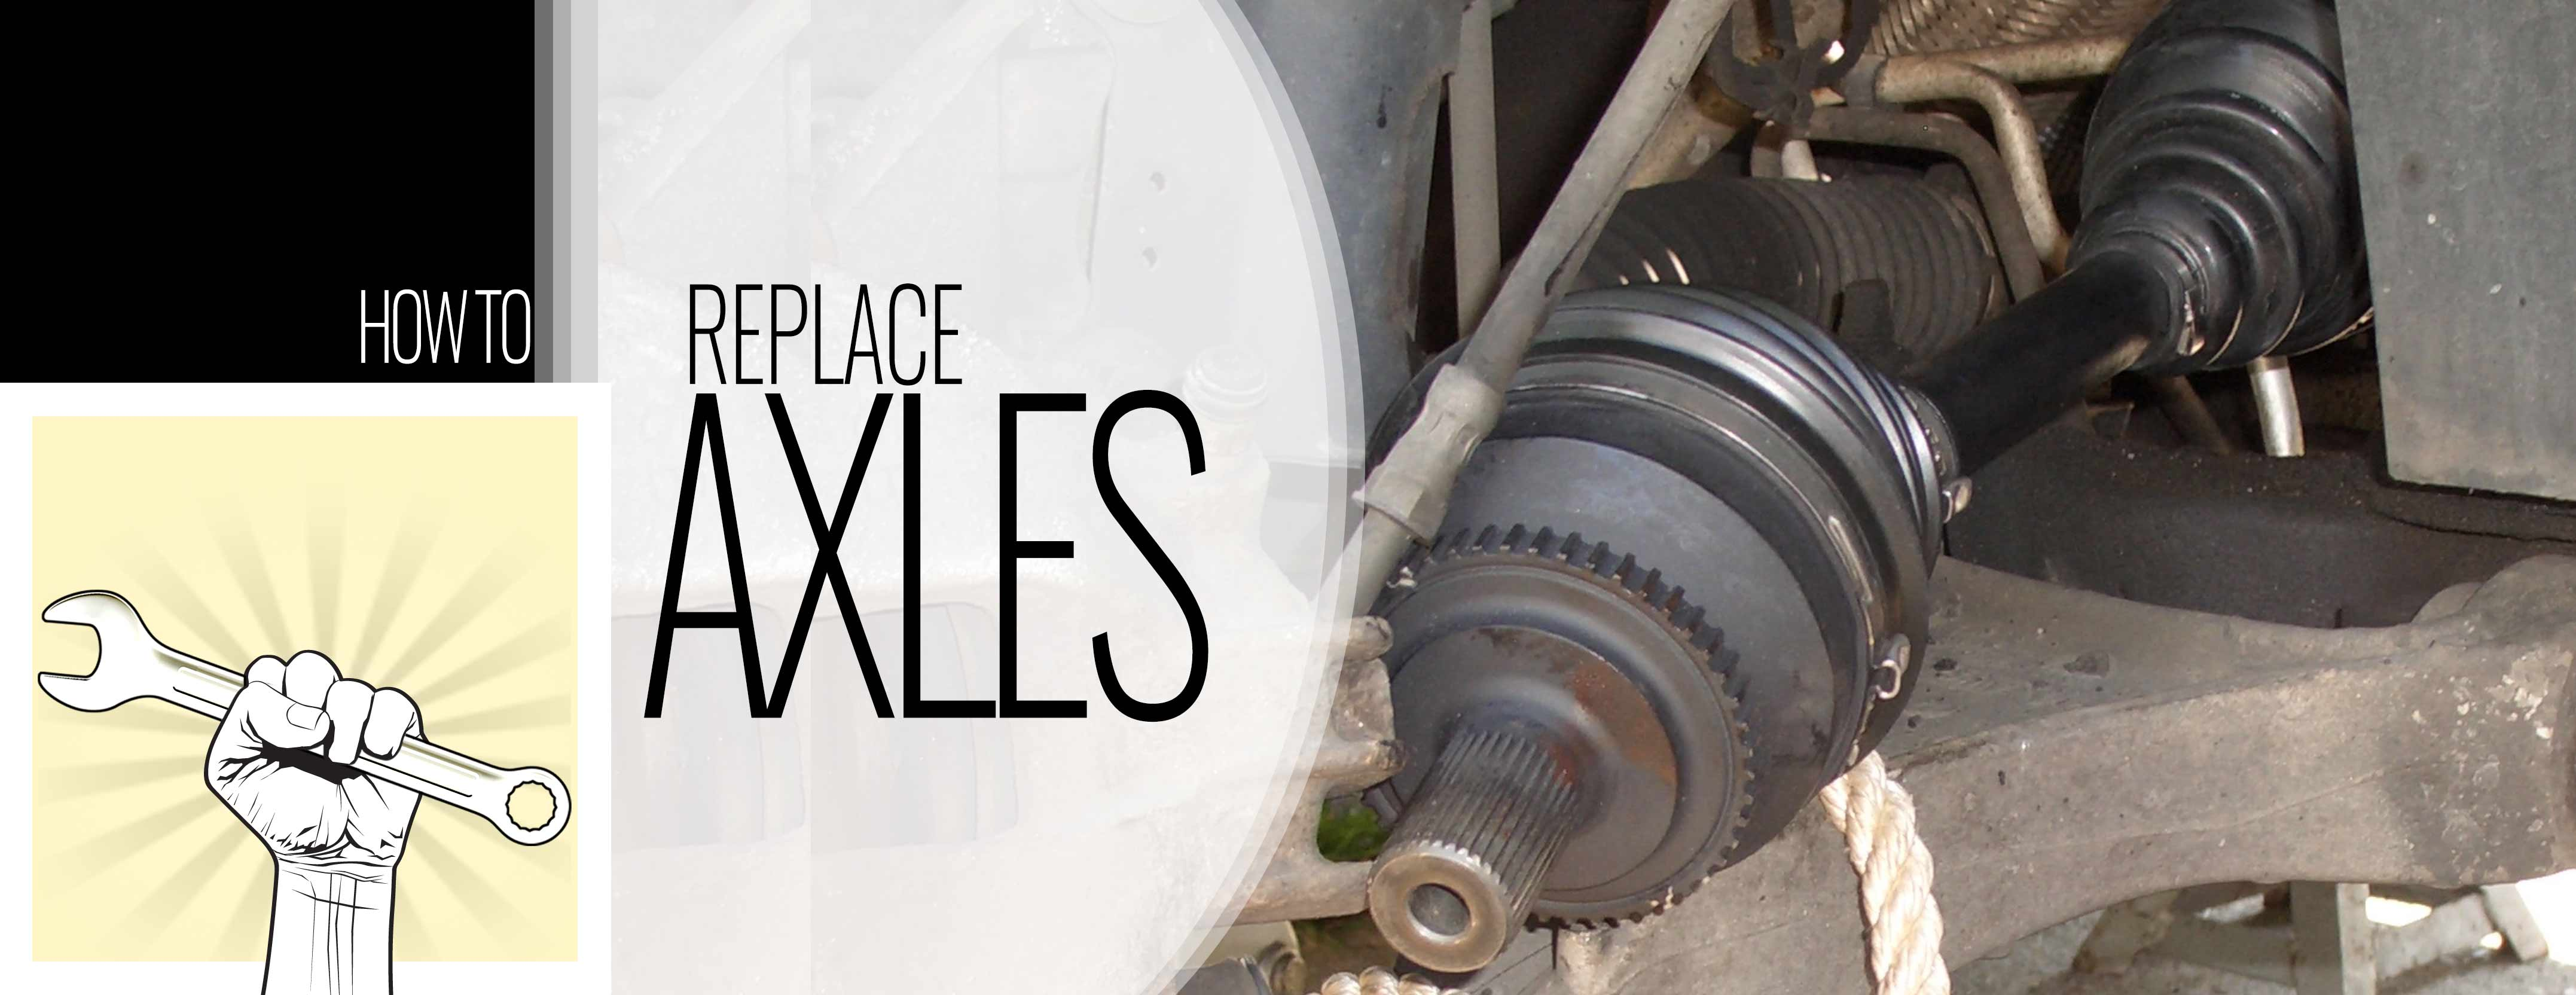 How To Replace Axles